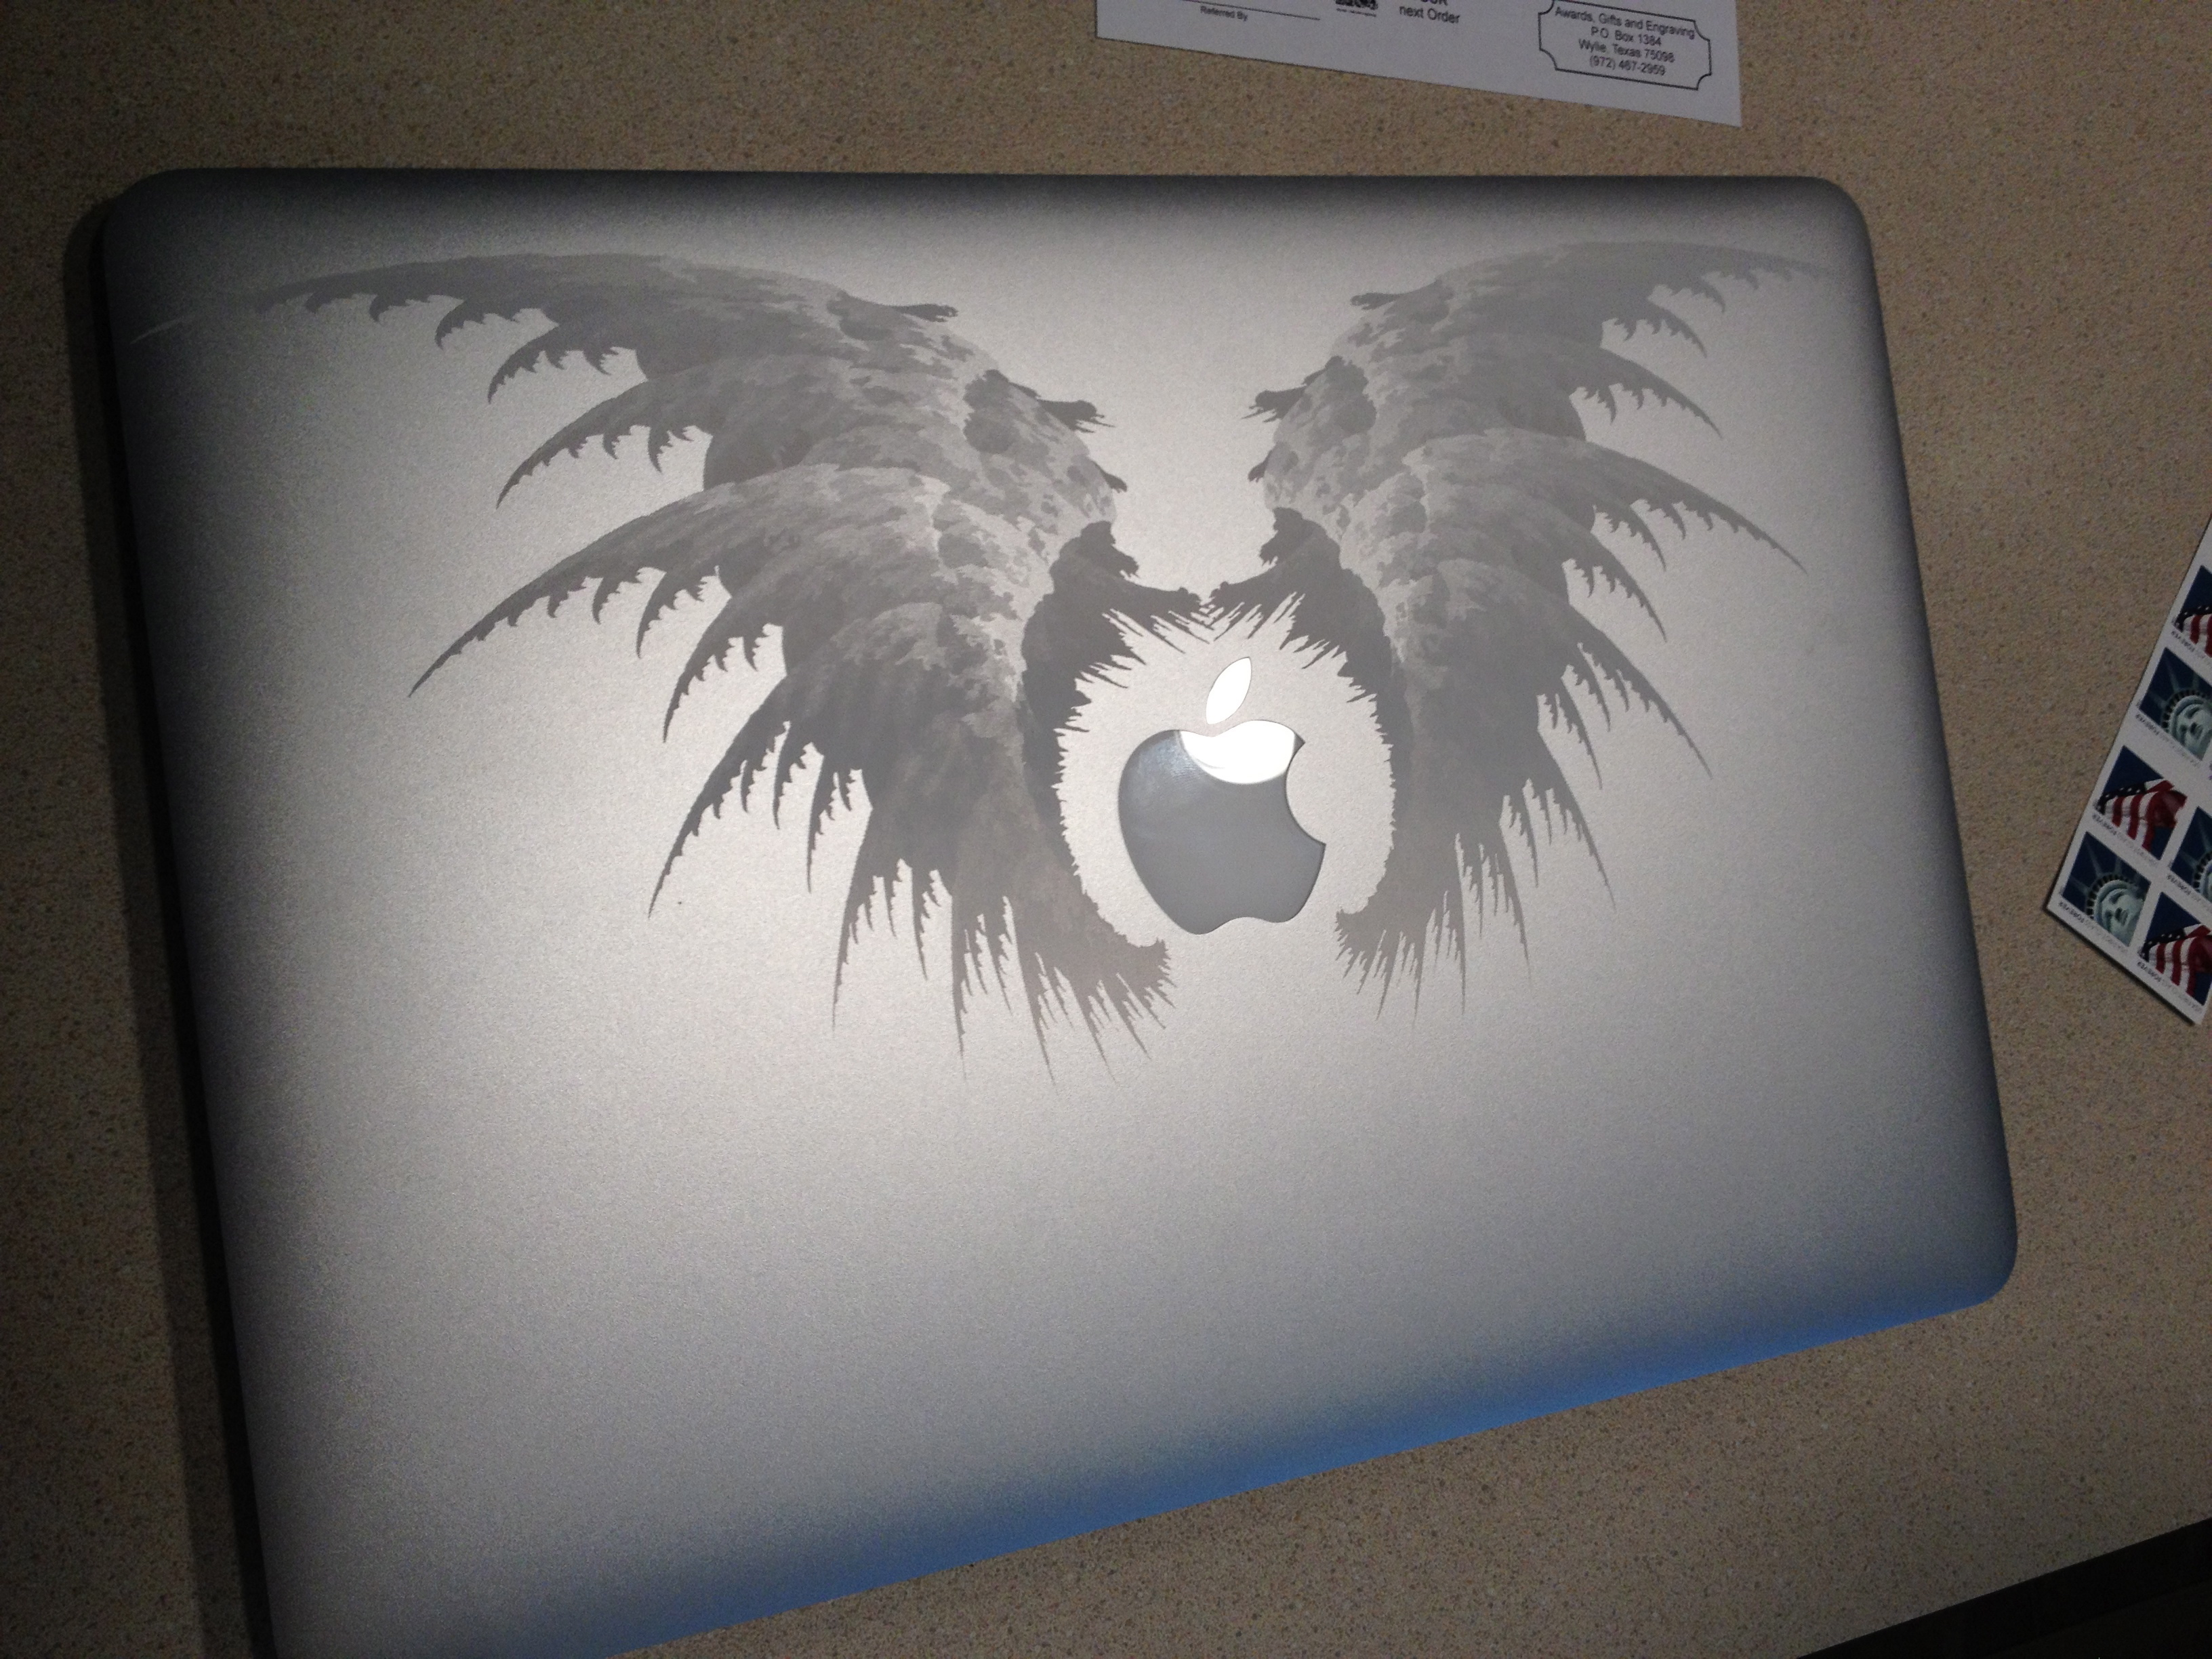 Drawn macbook engraved Laser MacRumors Another Air engraved